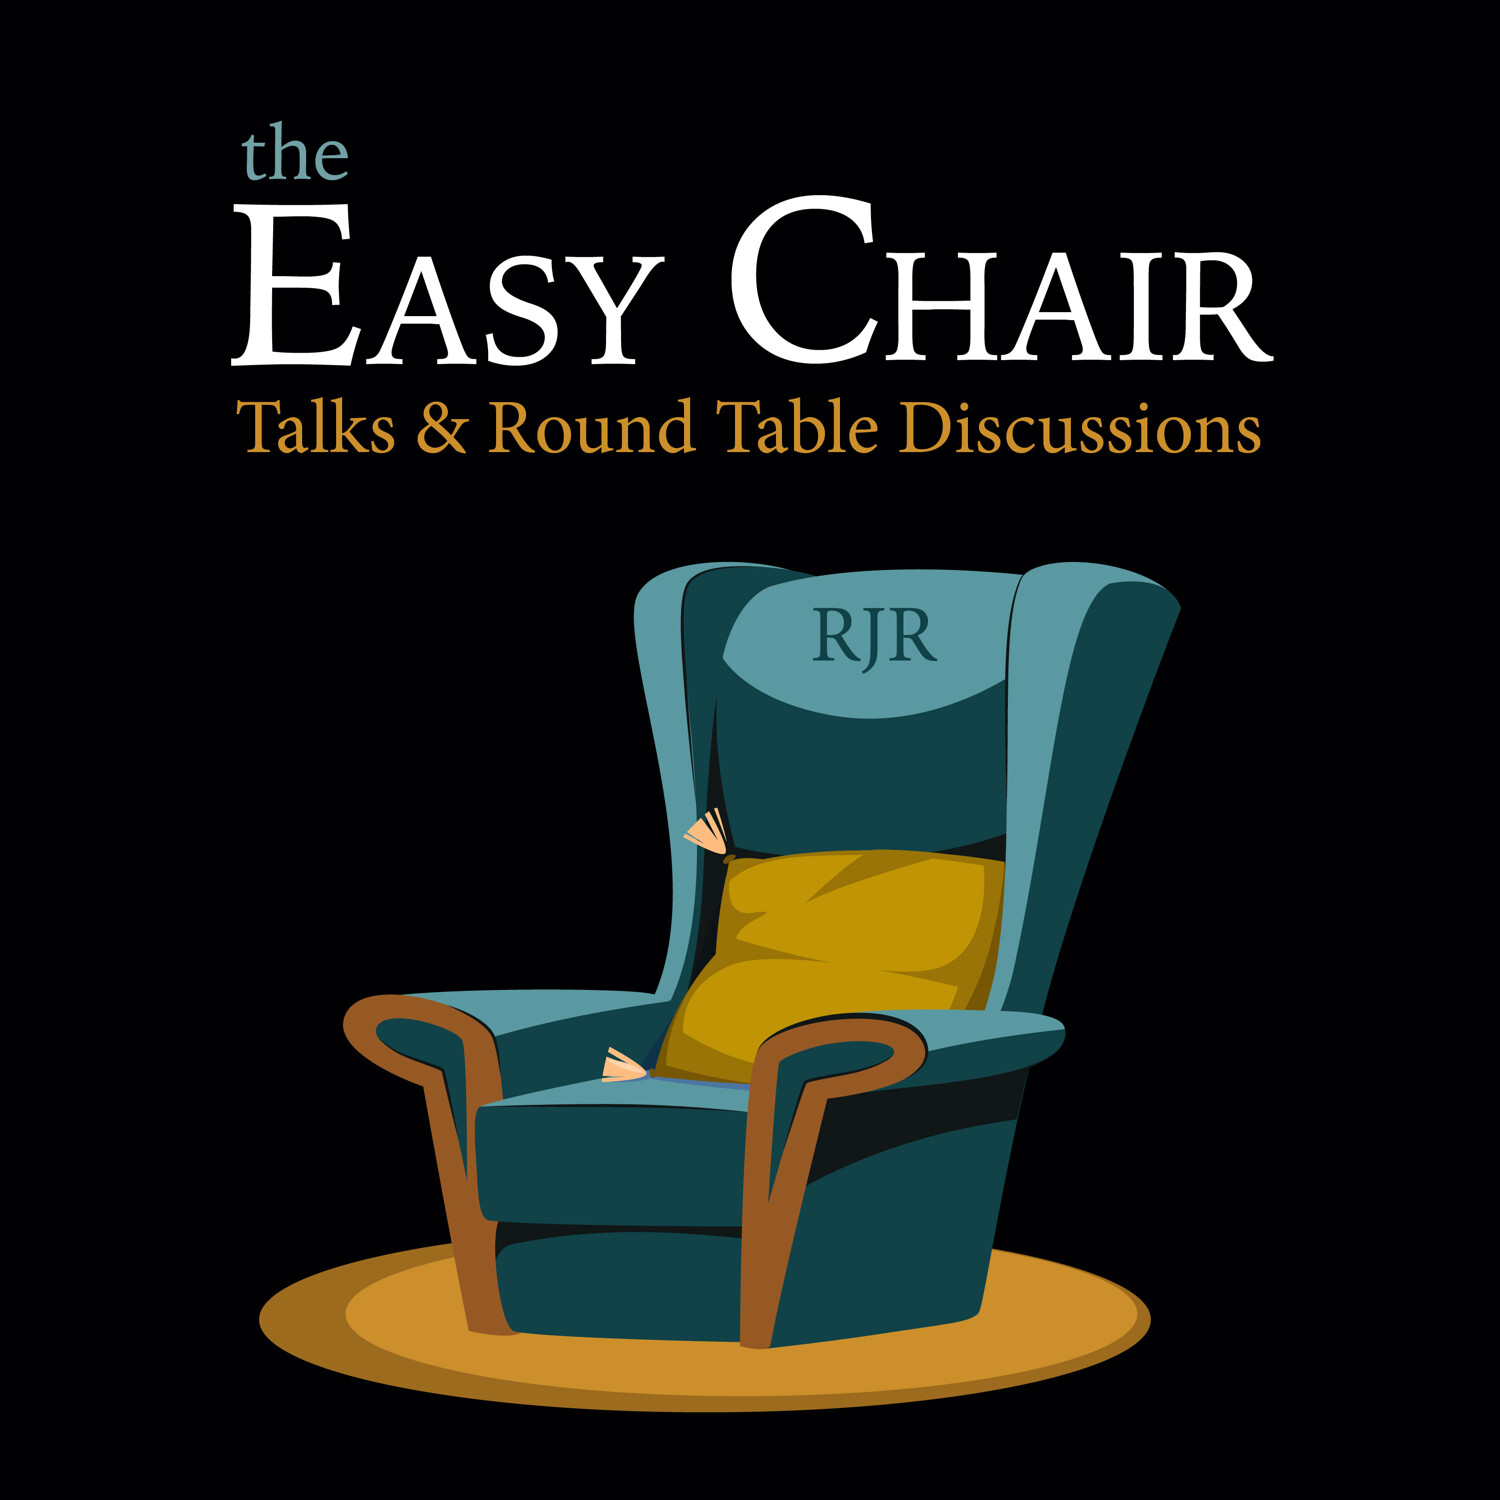 The Easy Chair